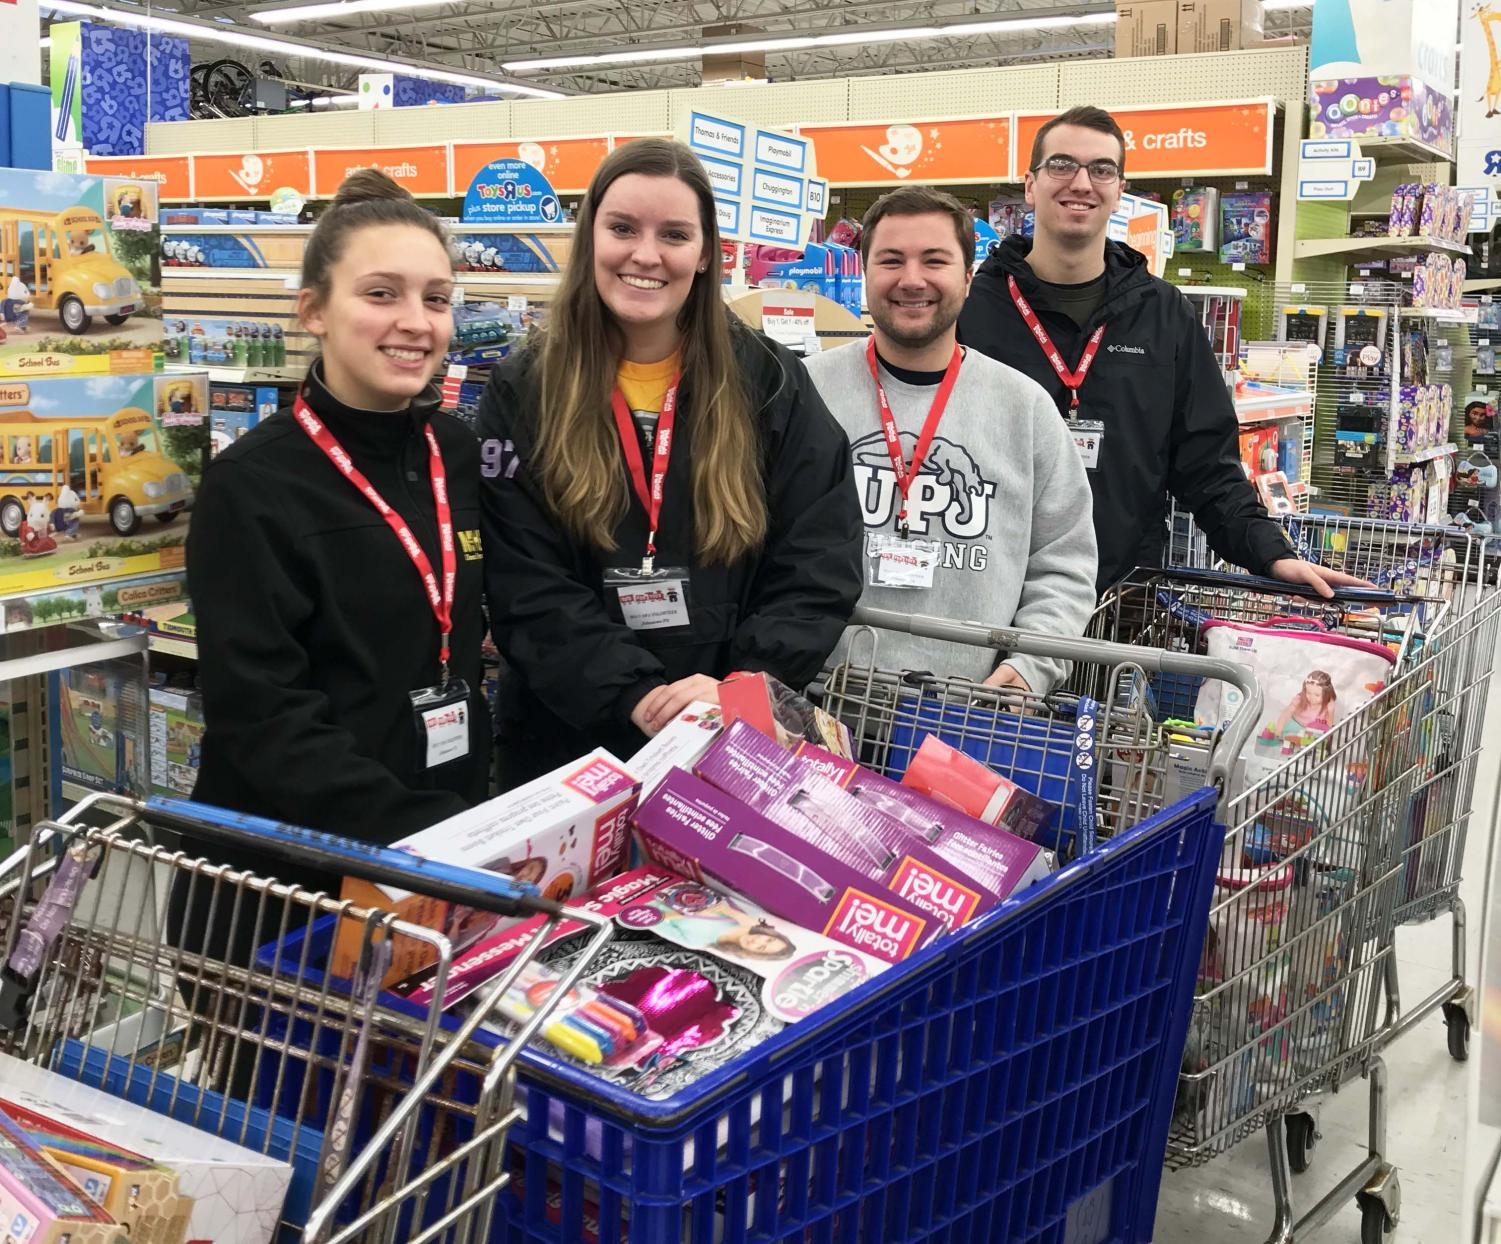 Student government members (left-right) Keirstin Ward, Gretchen Sheppard, Brady Willis and Joe Evanko particapate in a toy buy at Toys R Us Nov. 7